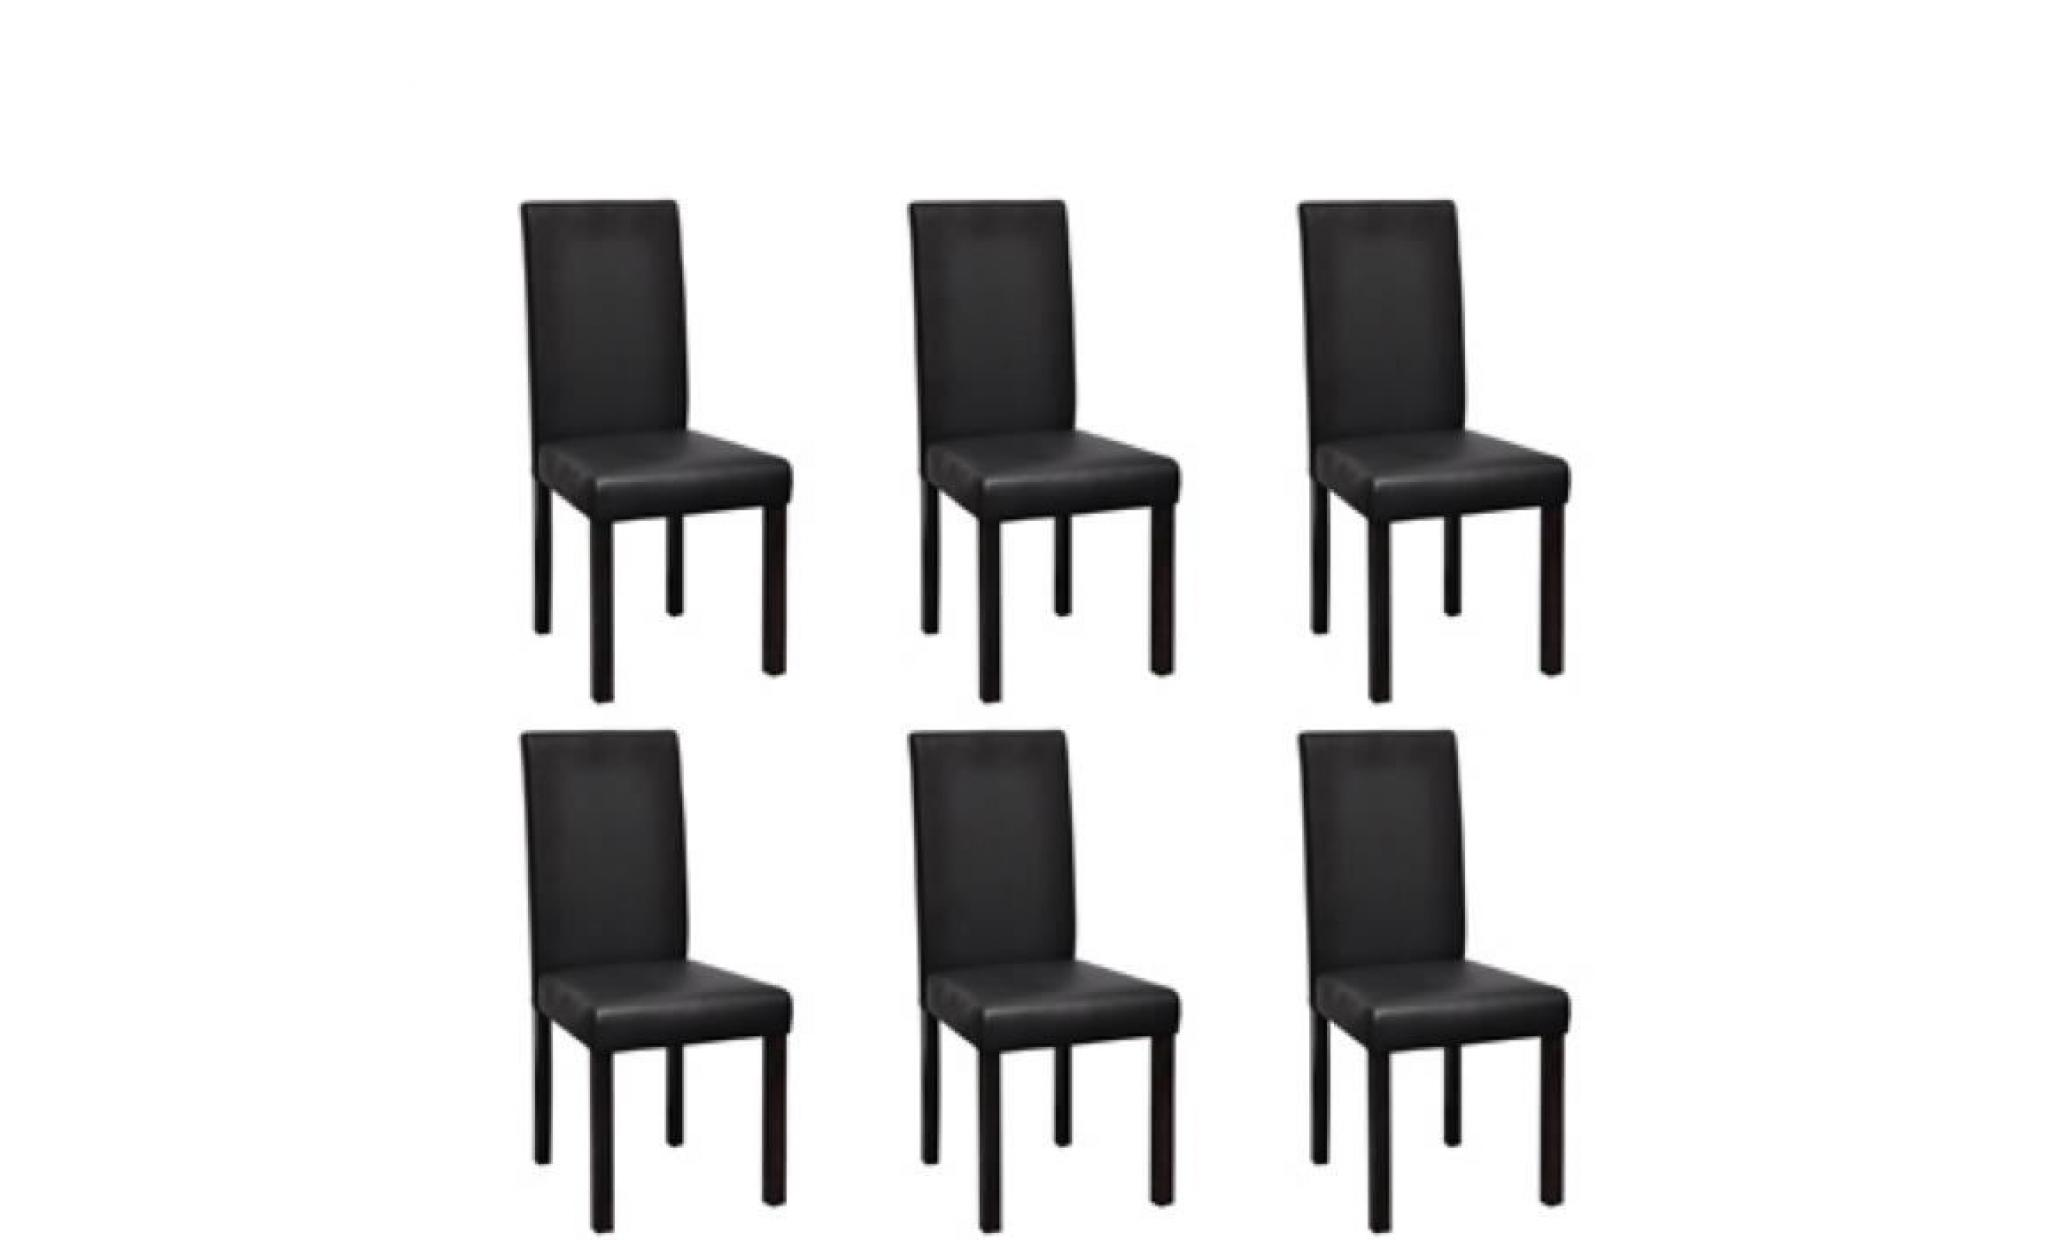 chaise design colonial noire lot de 6 achat vente. Black Bedroom Furniture Sets. Home Design Ideas